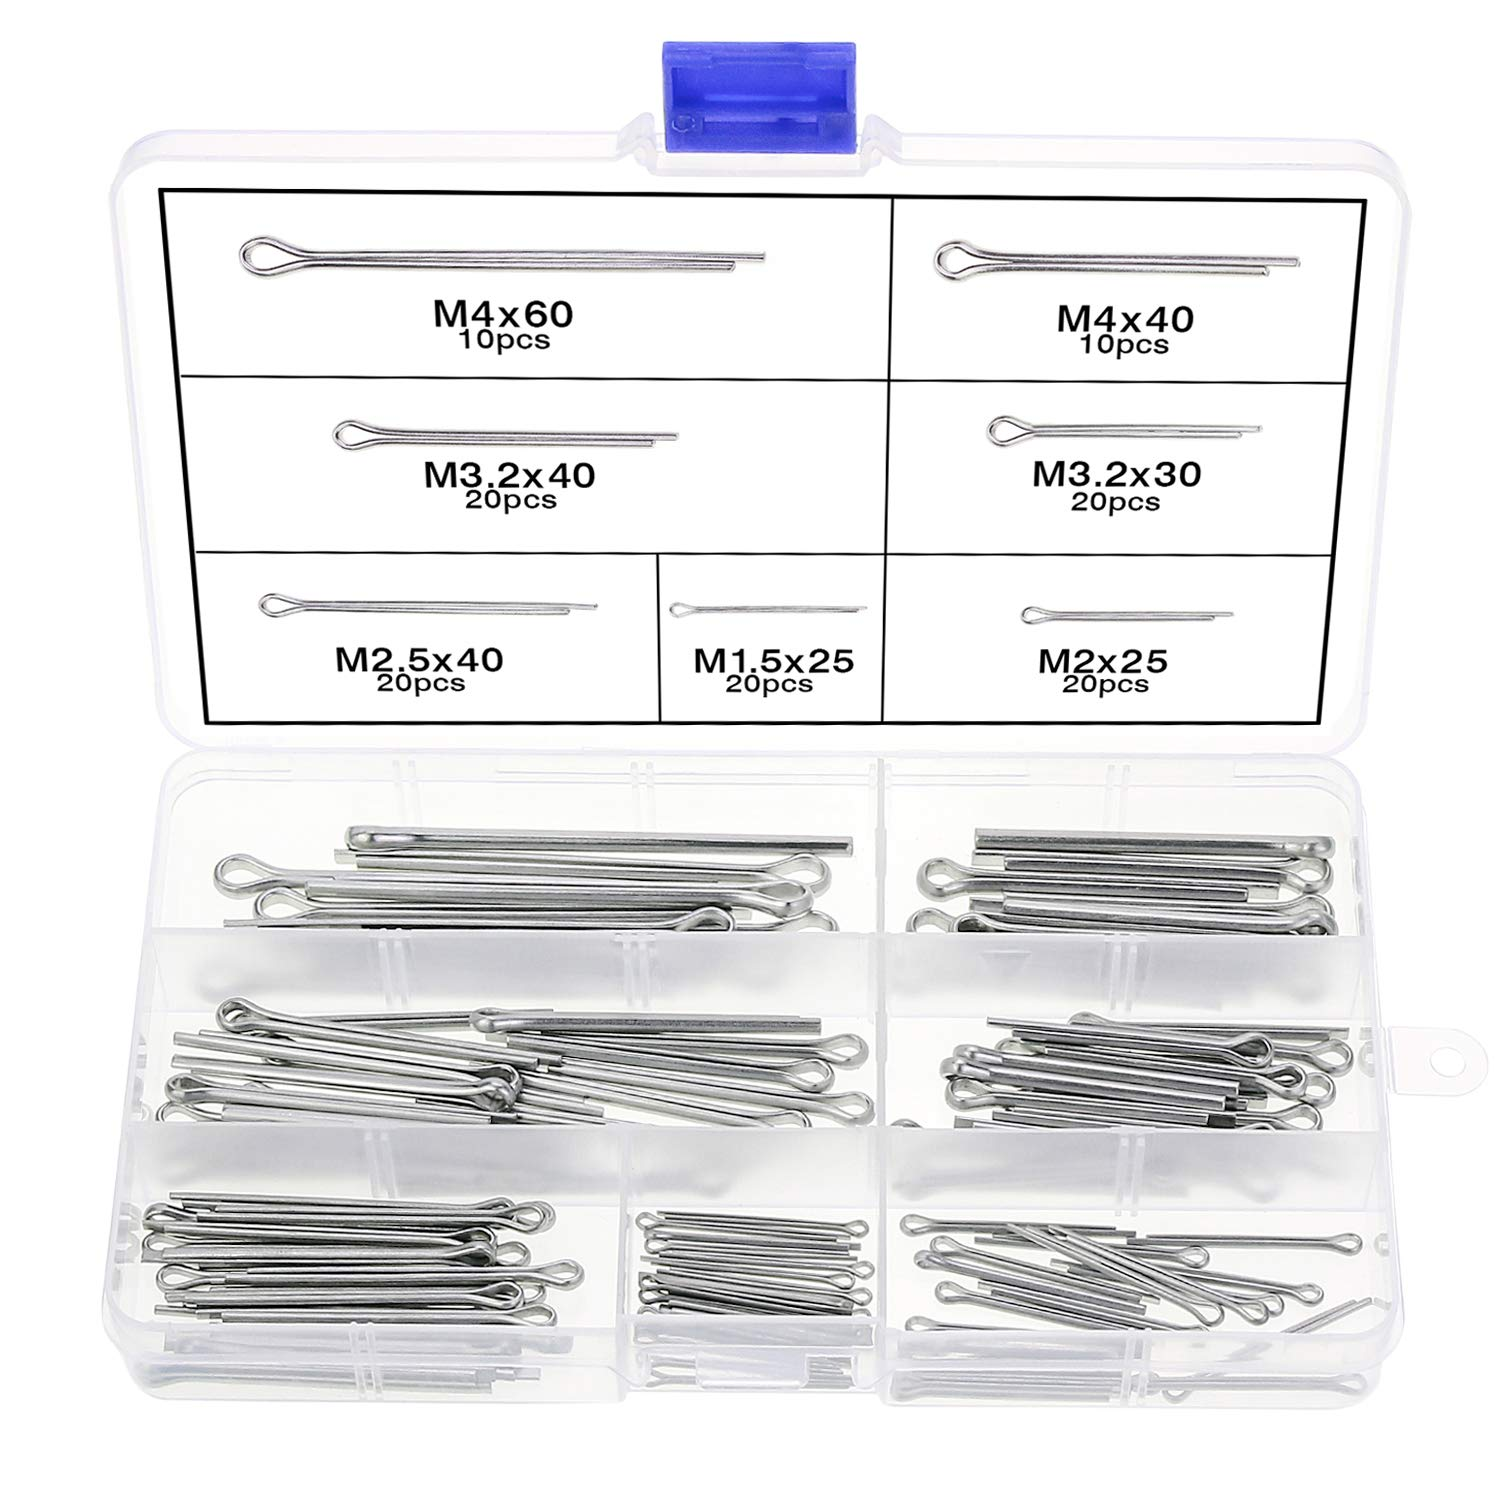 WiMas 7 Size 120PCS Stainless Steel Cotter Pin Clip Fastner Fitting Assortment Kit for Automotive Mechanics Small Engine Repair